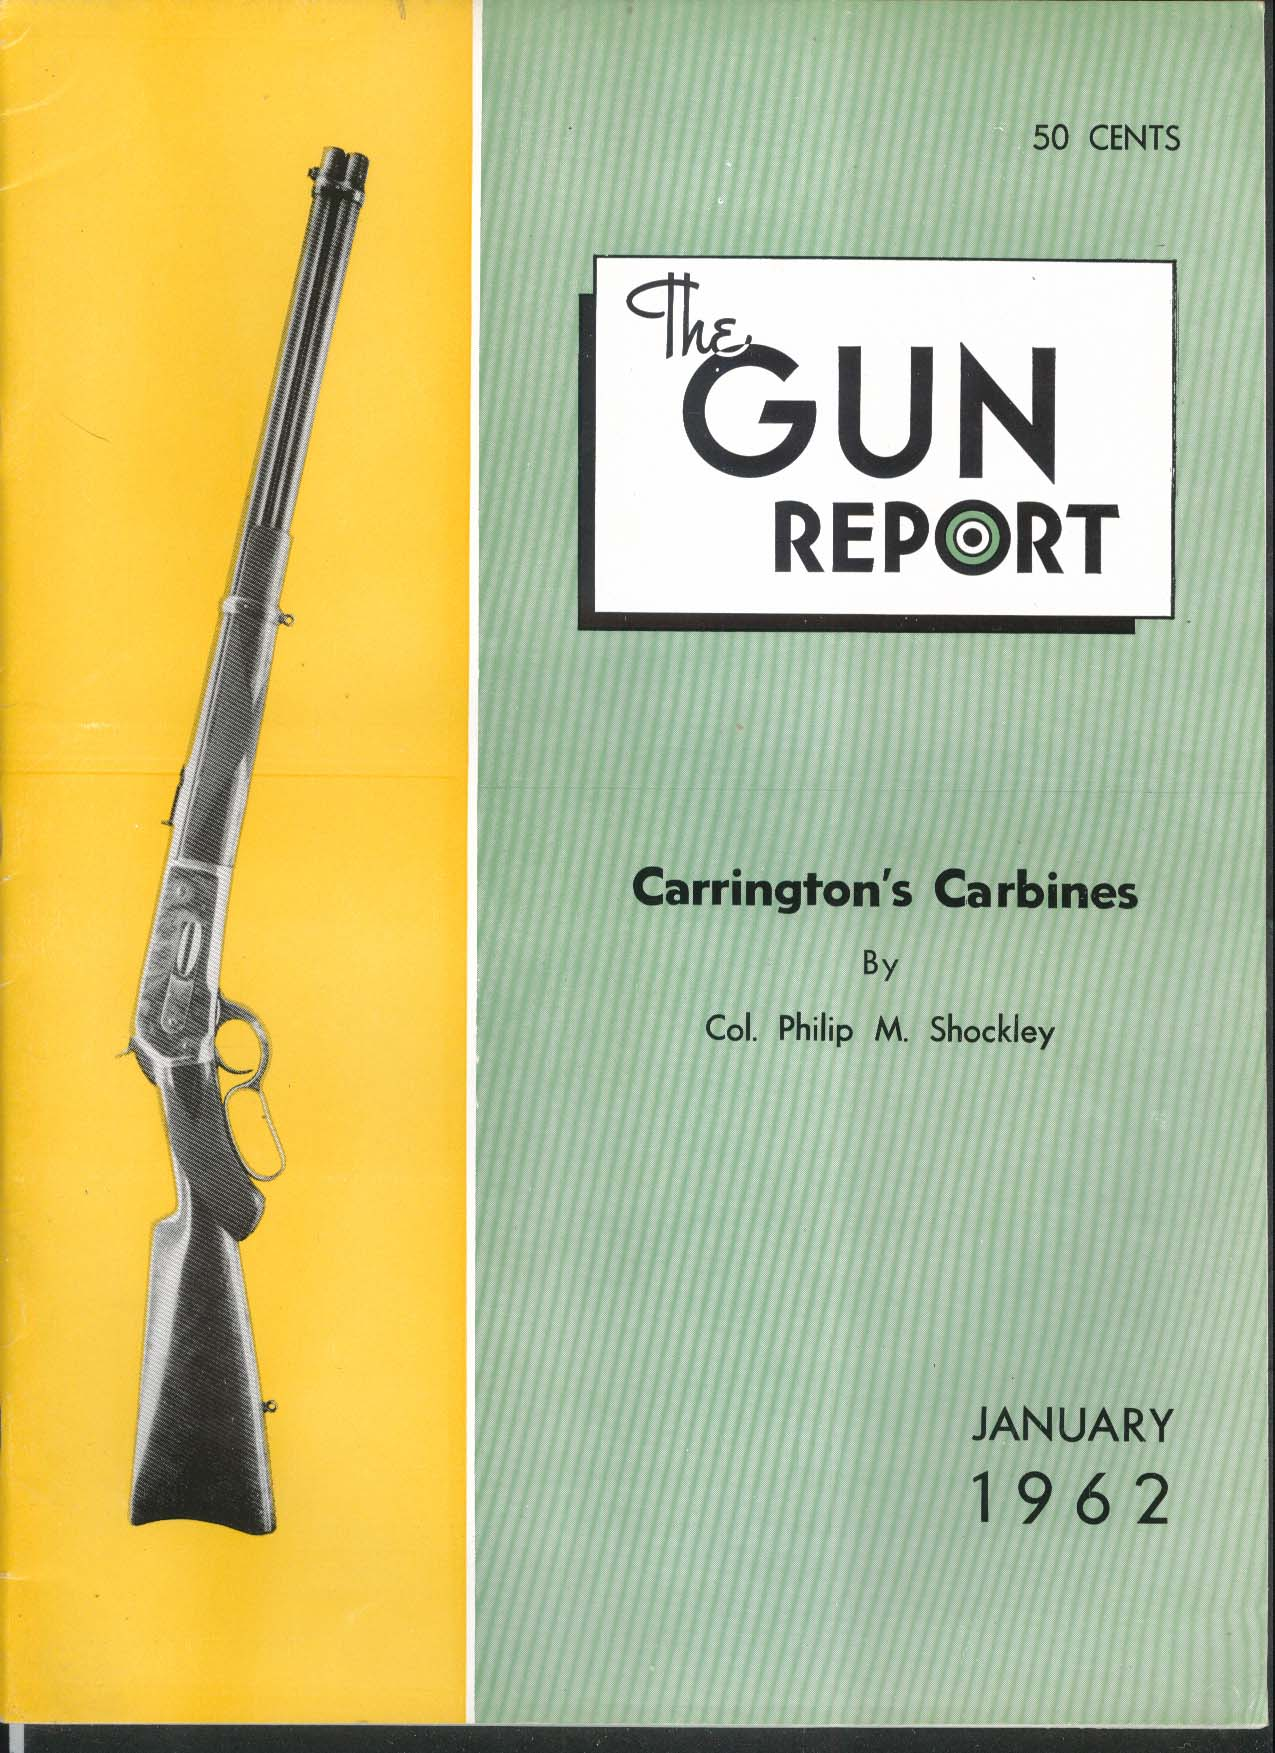 GUN REPORT Carrington Carbine Browning 1 1962